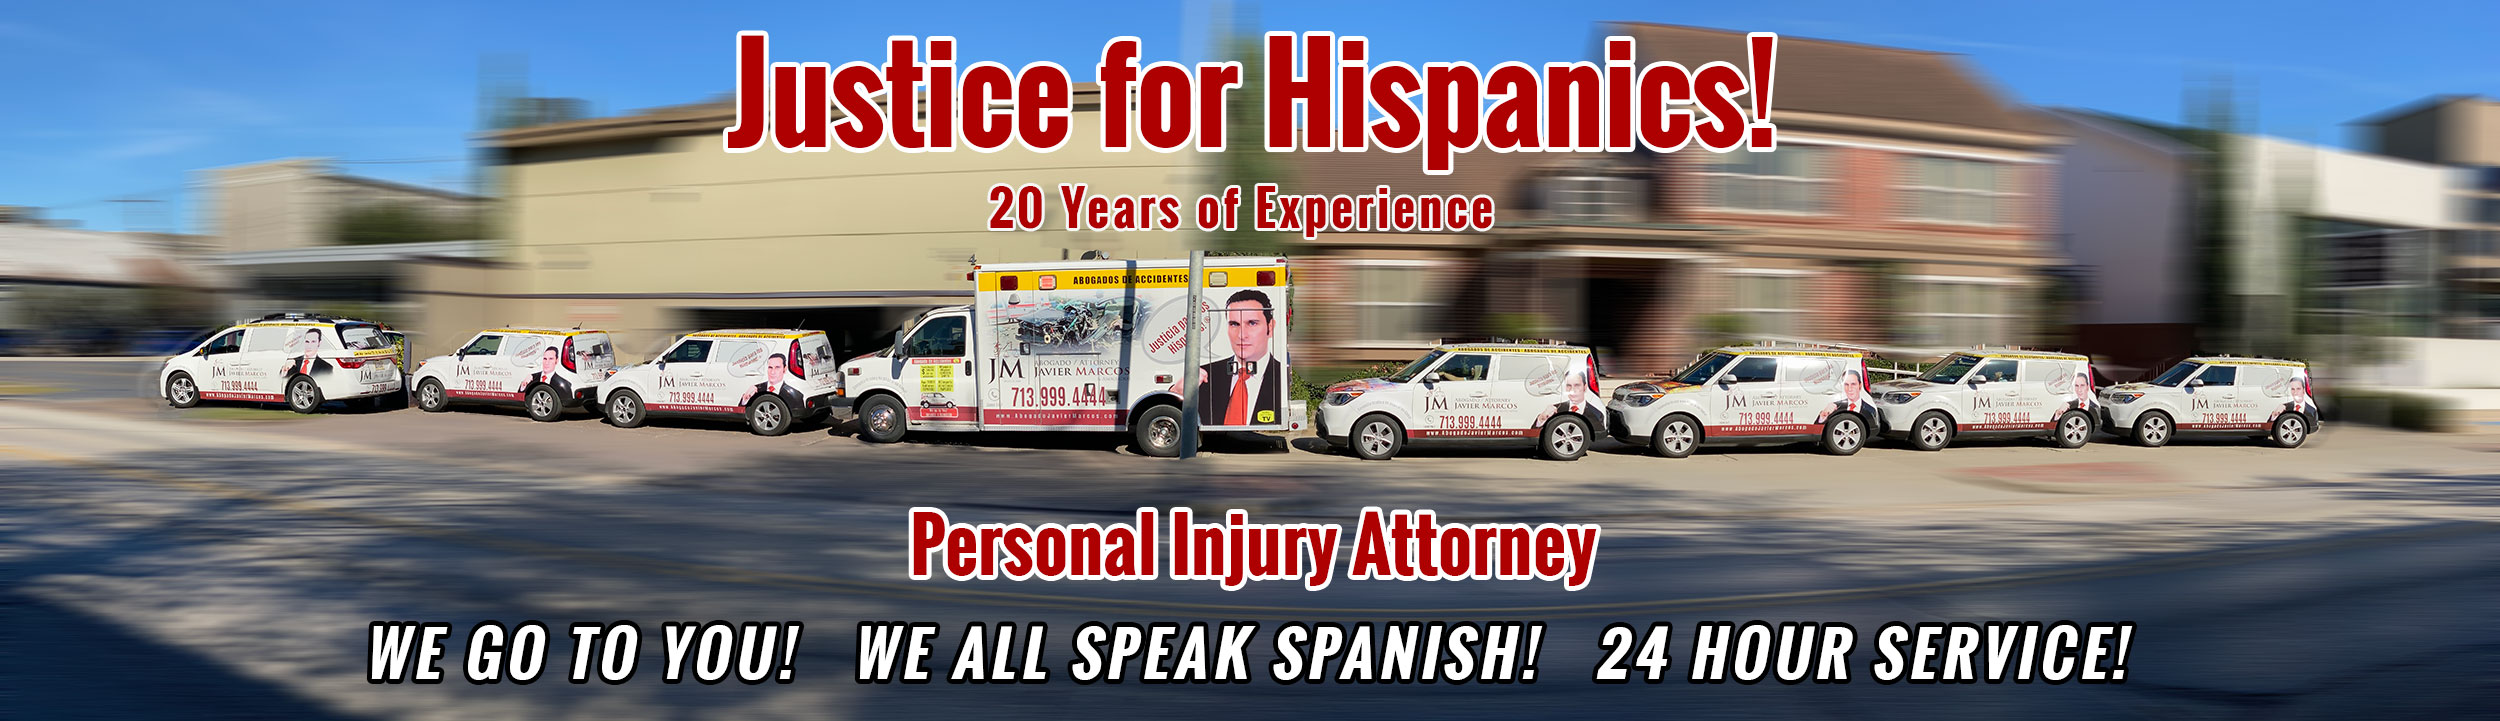 Personal Injury Attorney | Justice for Hispanics | Attorney Javier Marcos